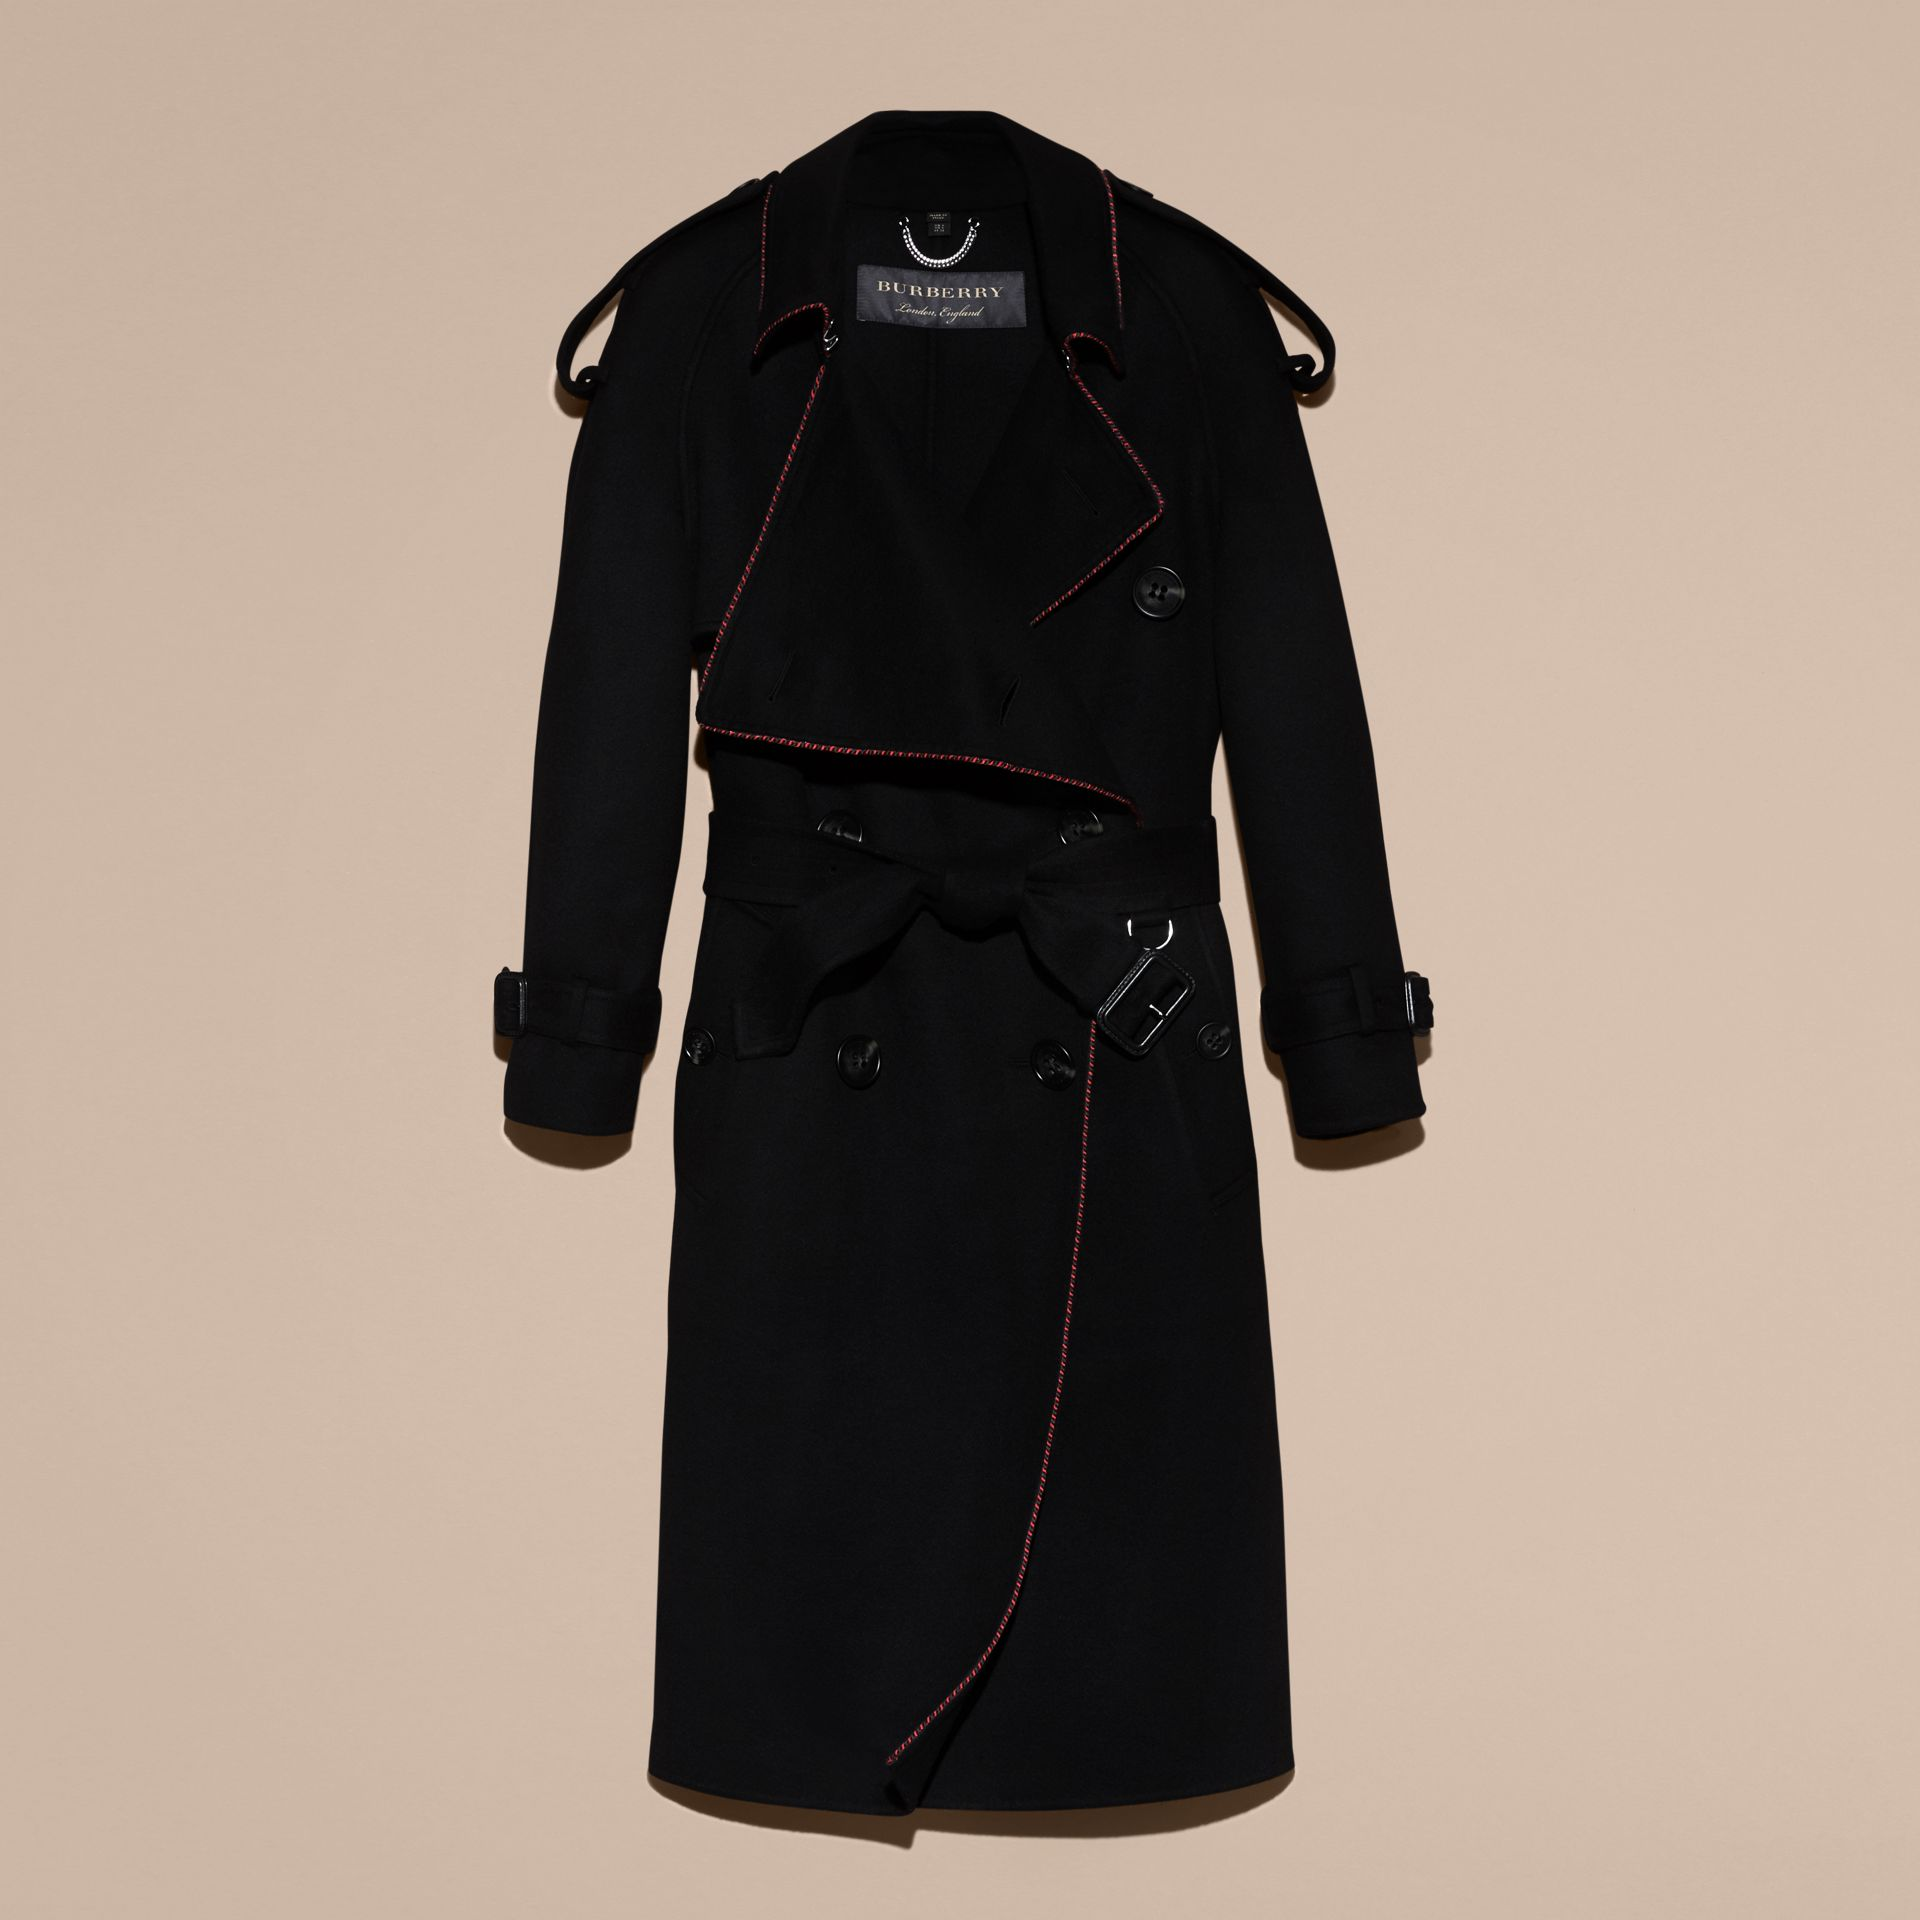 Deconstructed Cashmere Wool Trench Coat with Piping - gallery image 4